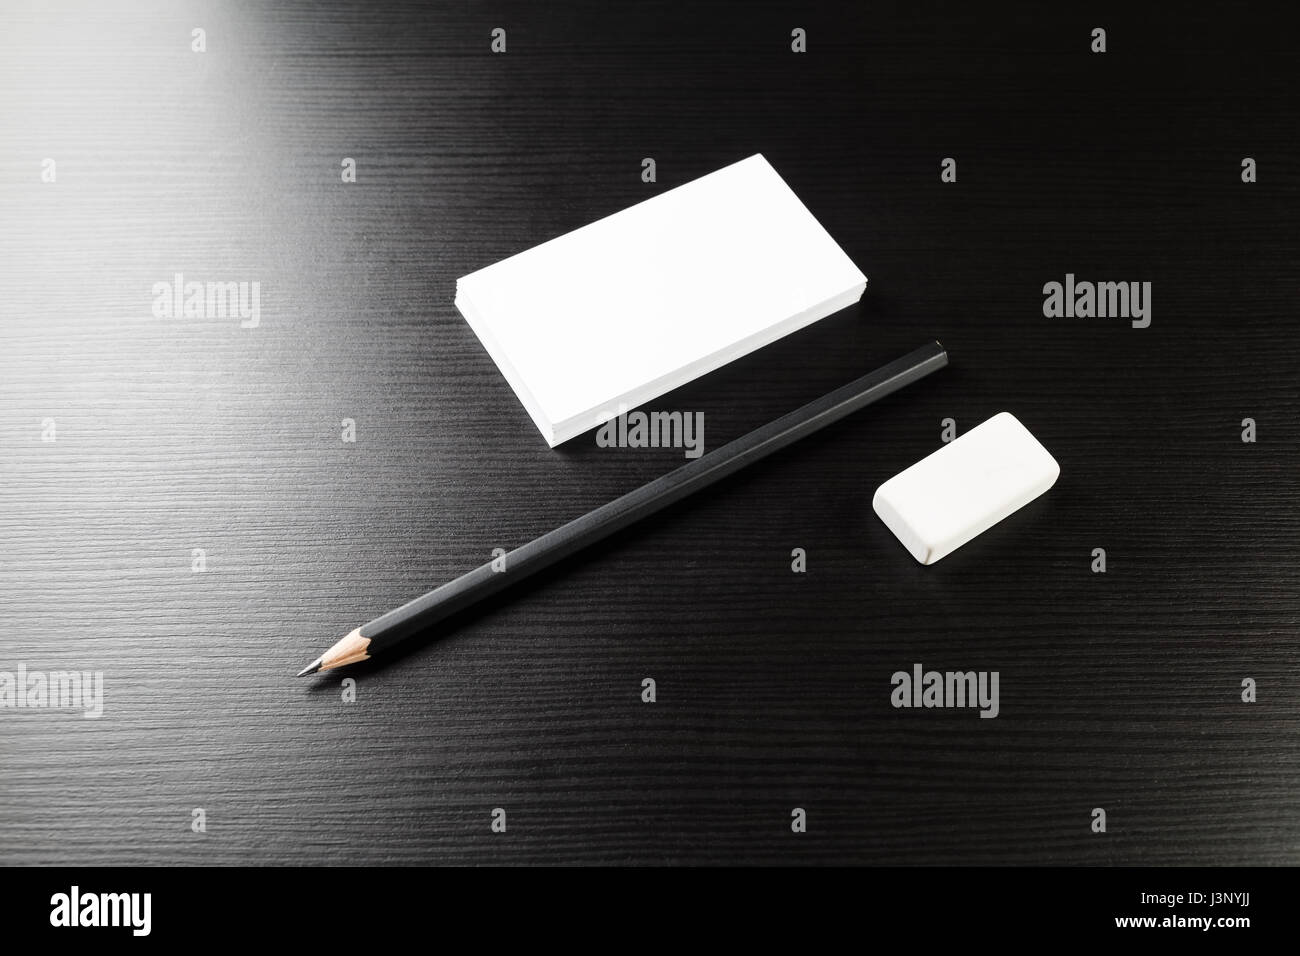 Bank Business Cards Pencil And Eraser On Black Wood Table Background Blank Stationery Template For Design Presentations Portfolios Top View